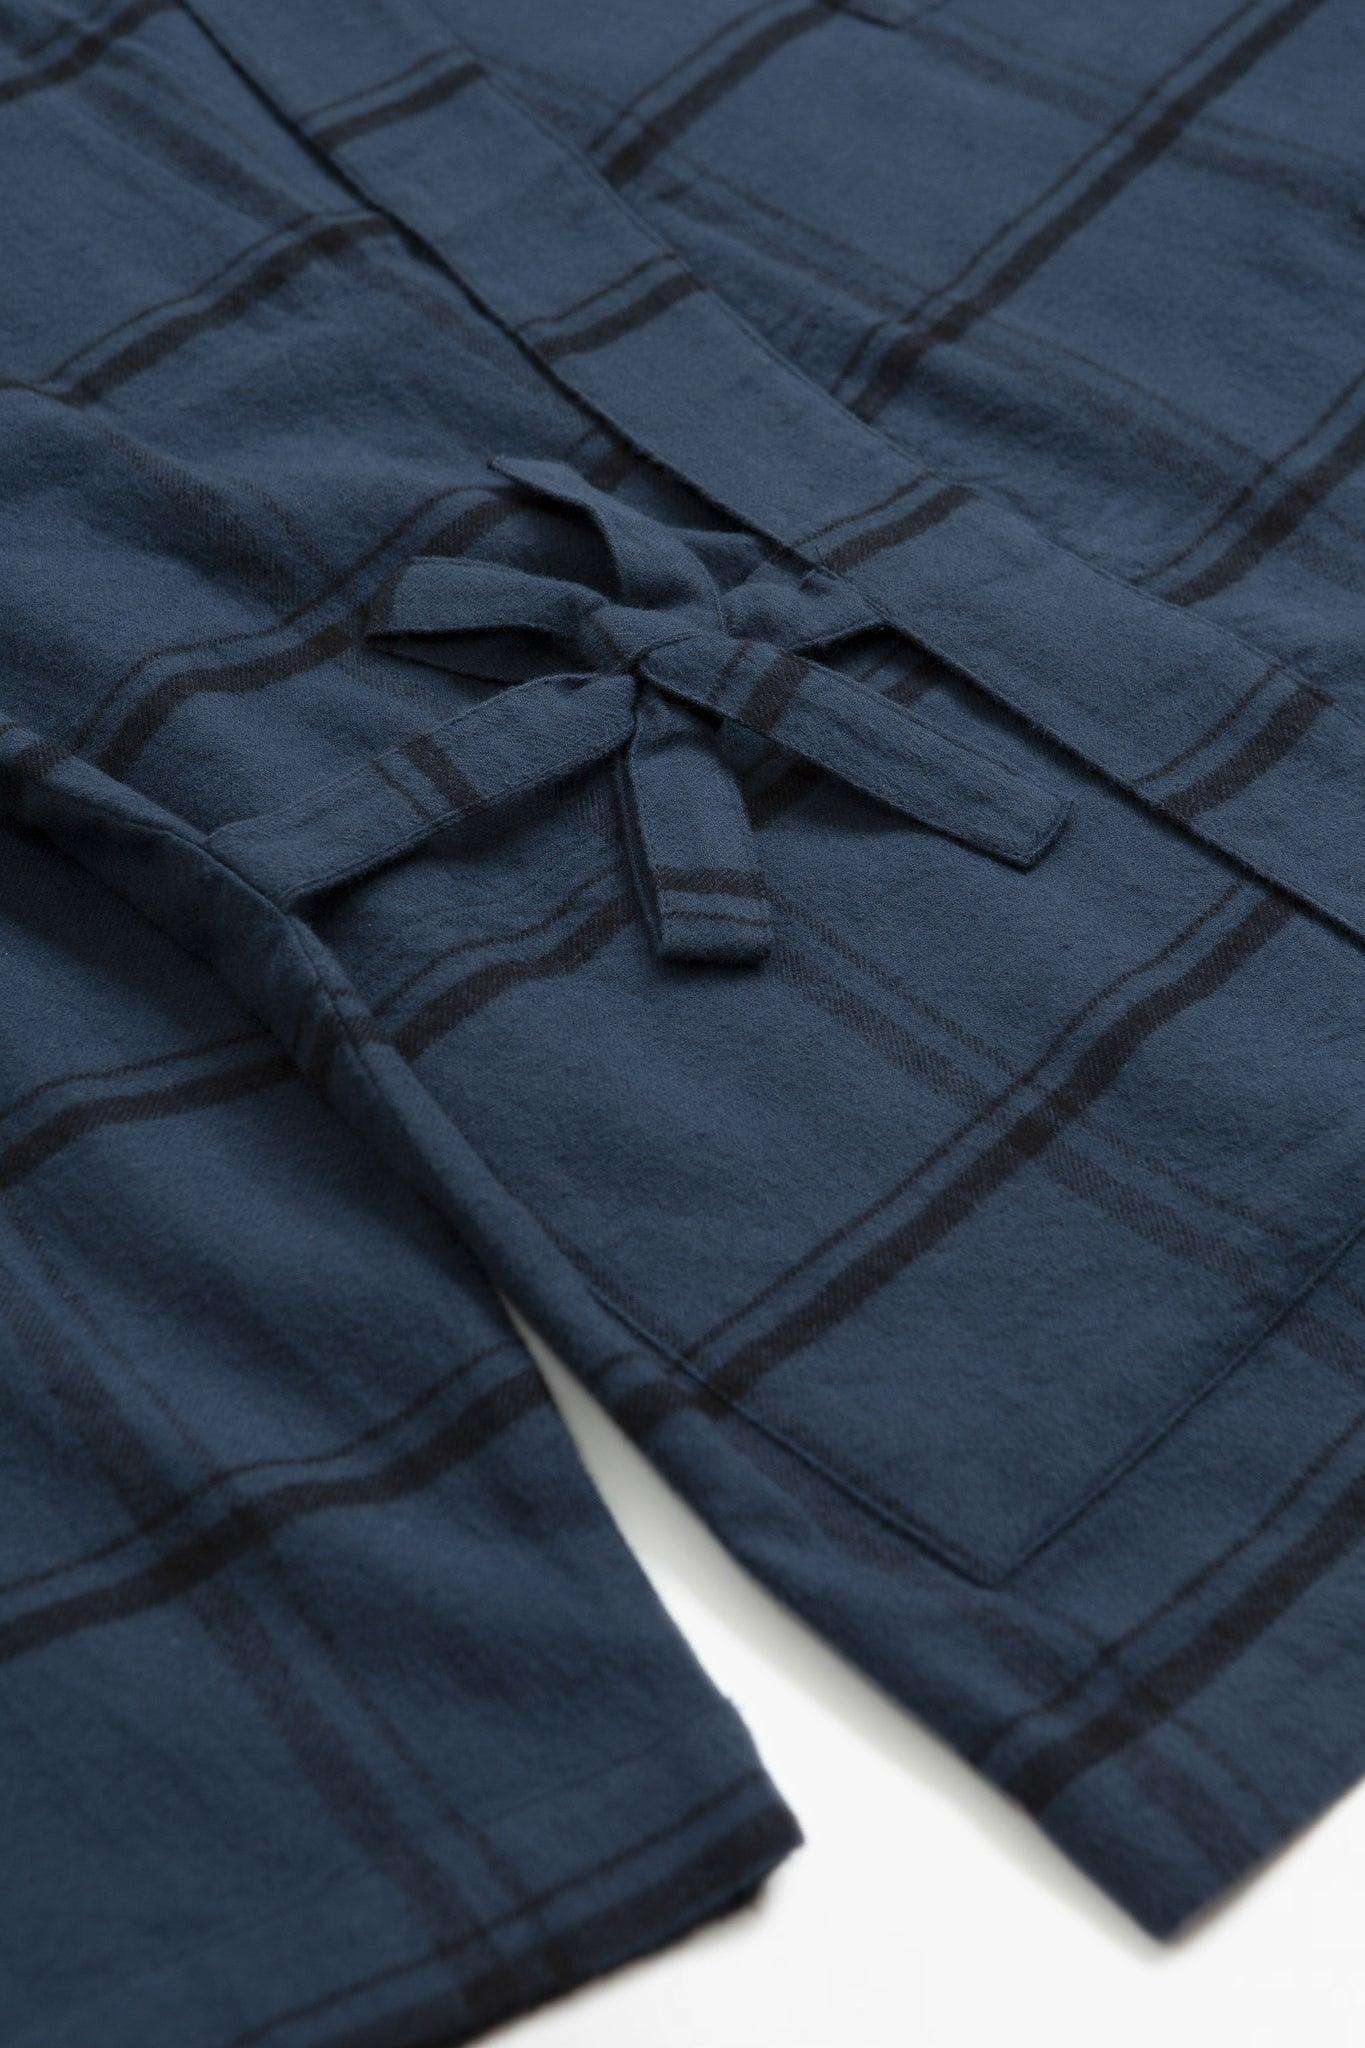 Kyoto work jacket brushed check blue